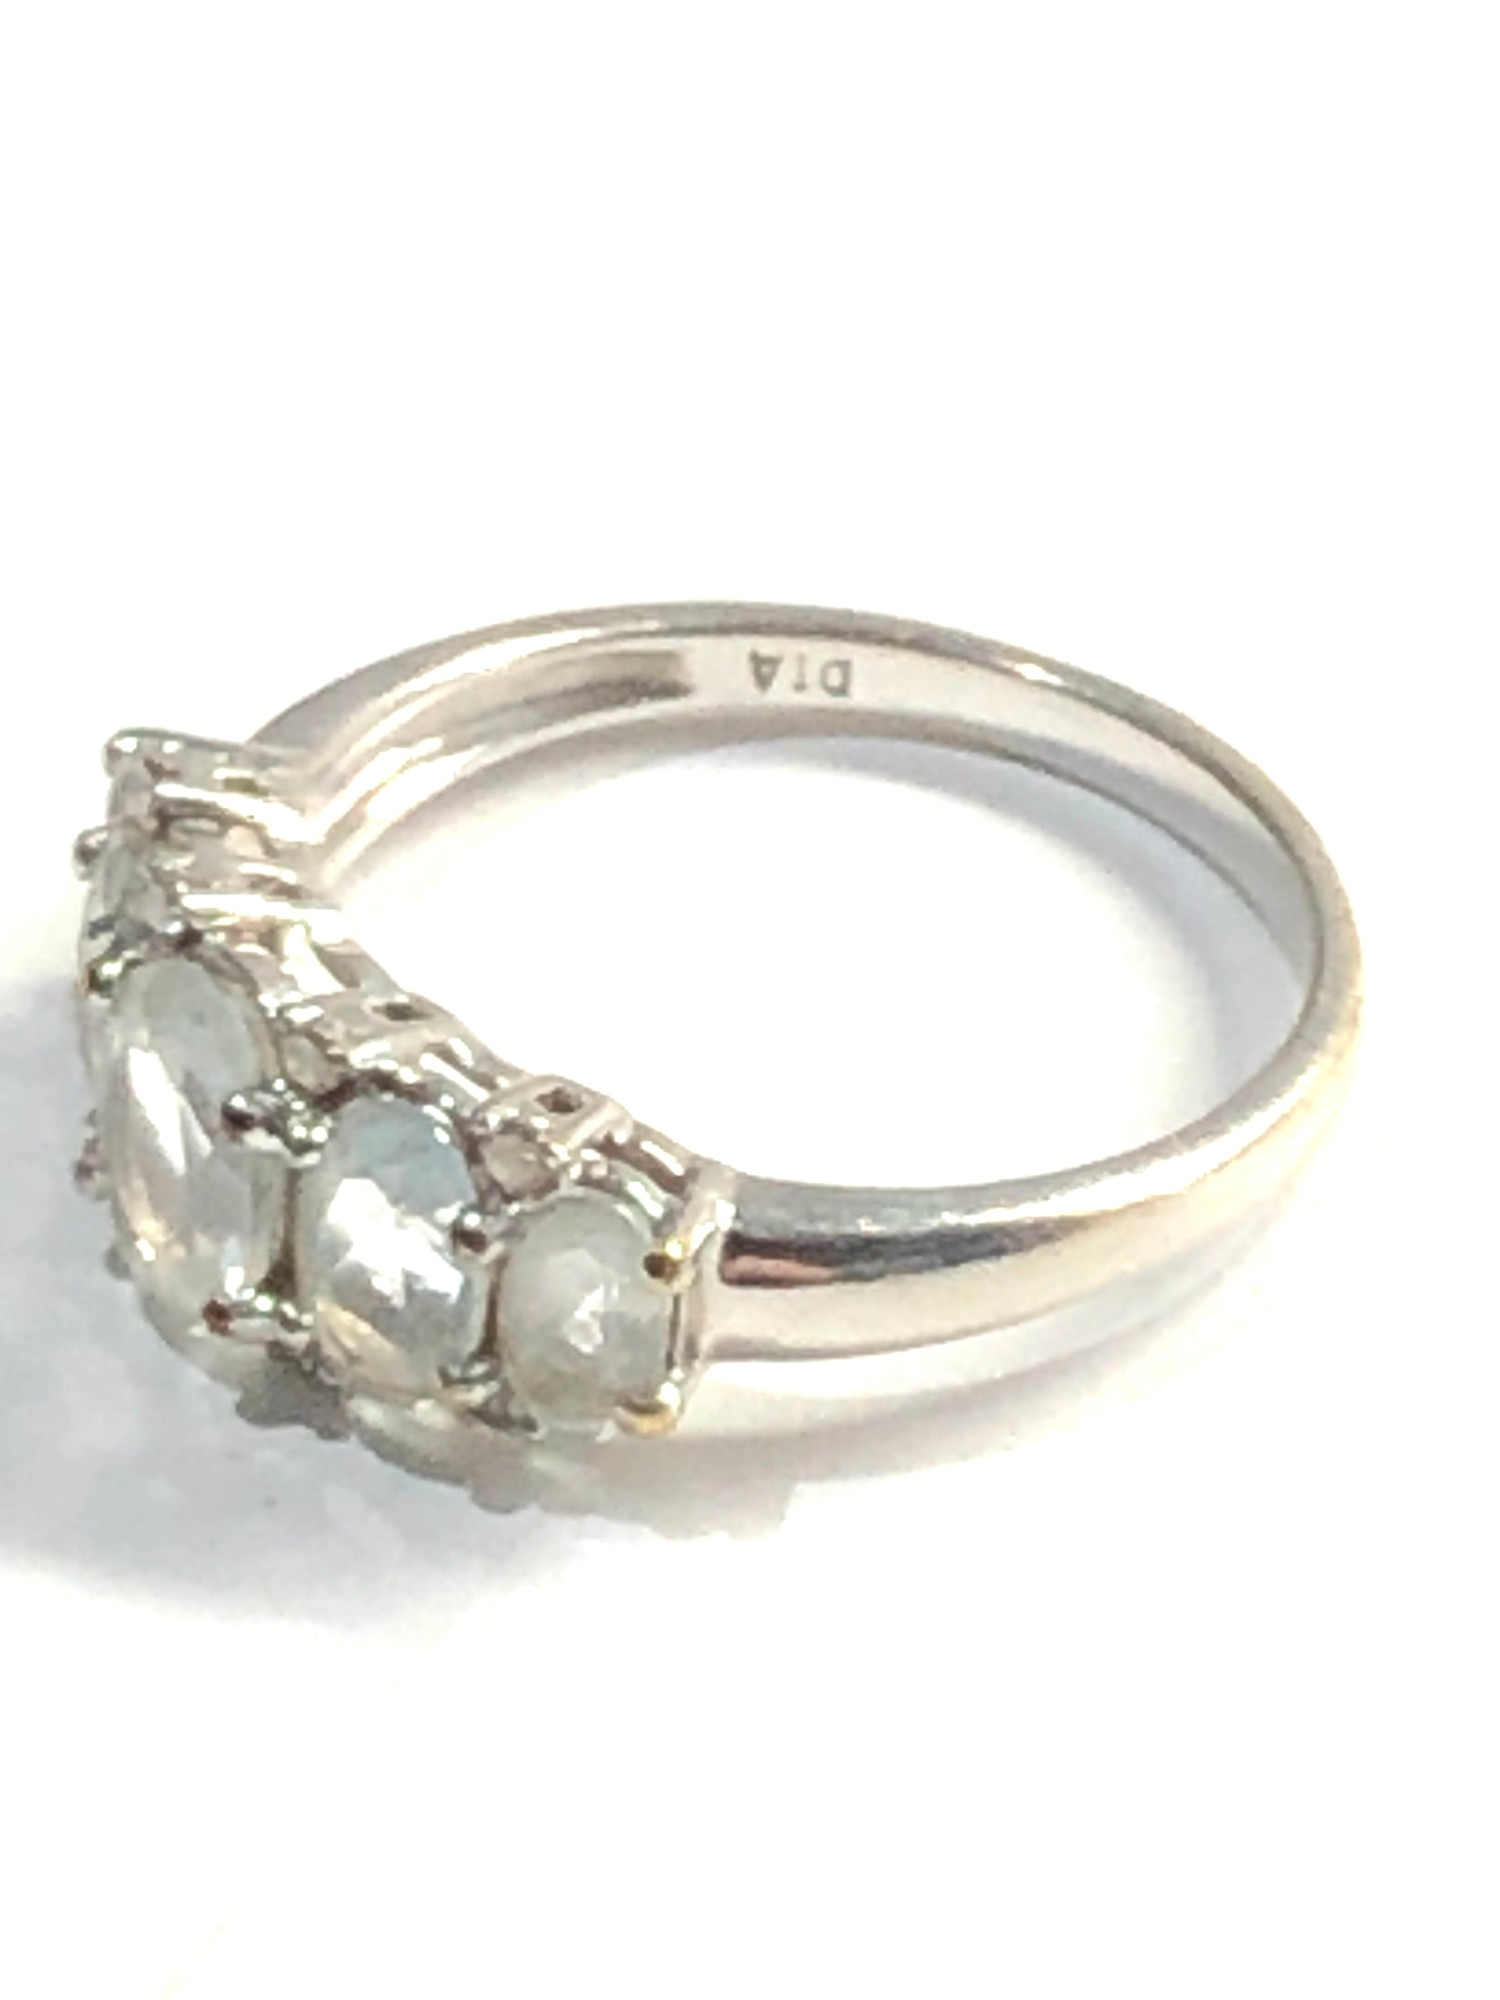 9ct White gold aquamarine 5 stone ring with diamond accents 2.7g - Image 2 of 3